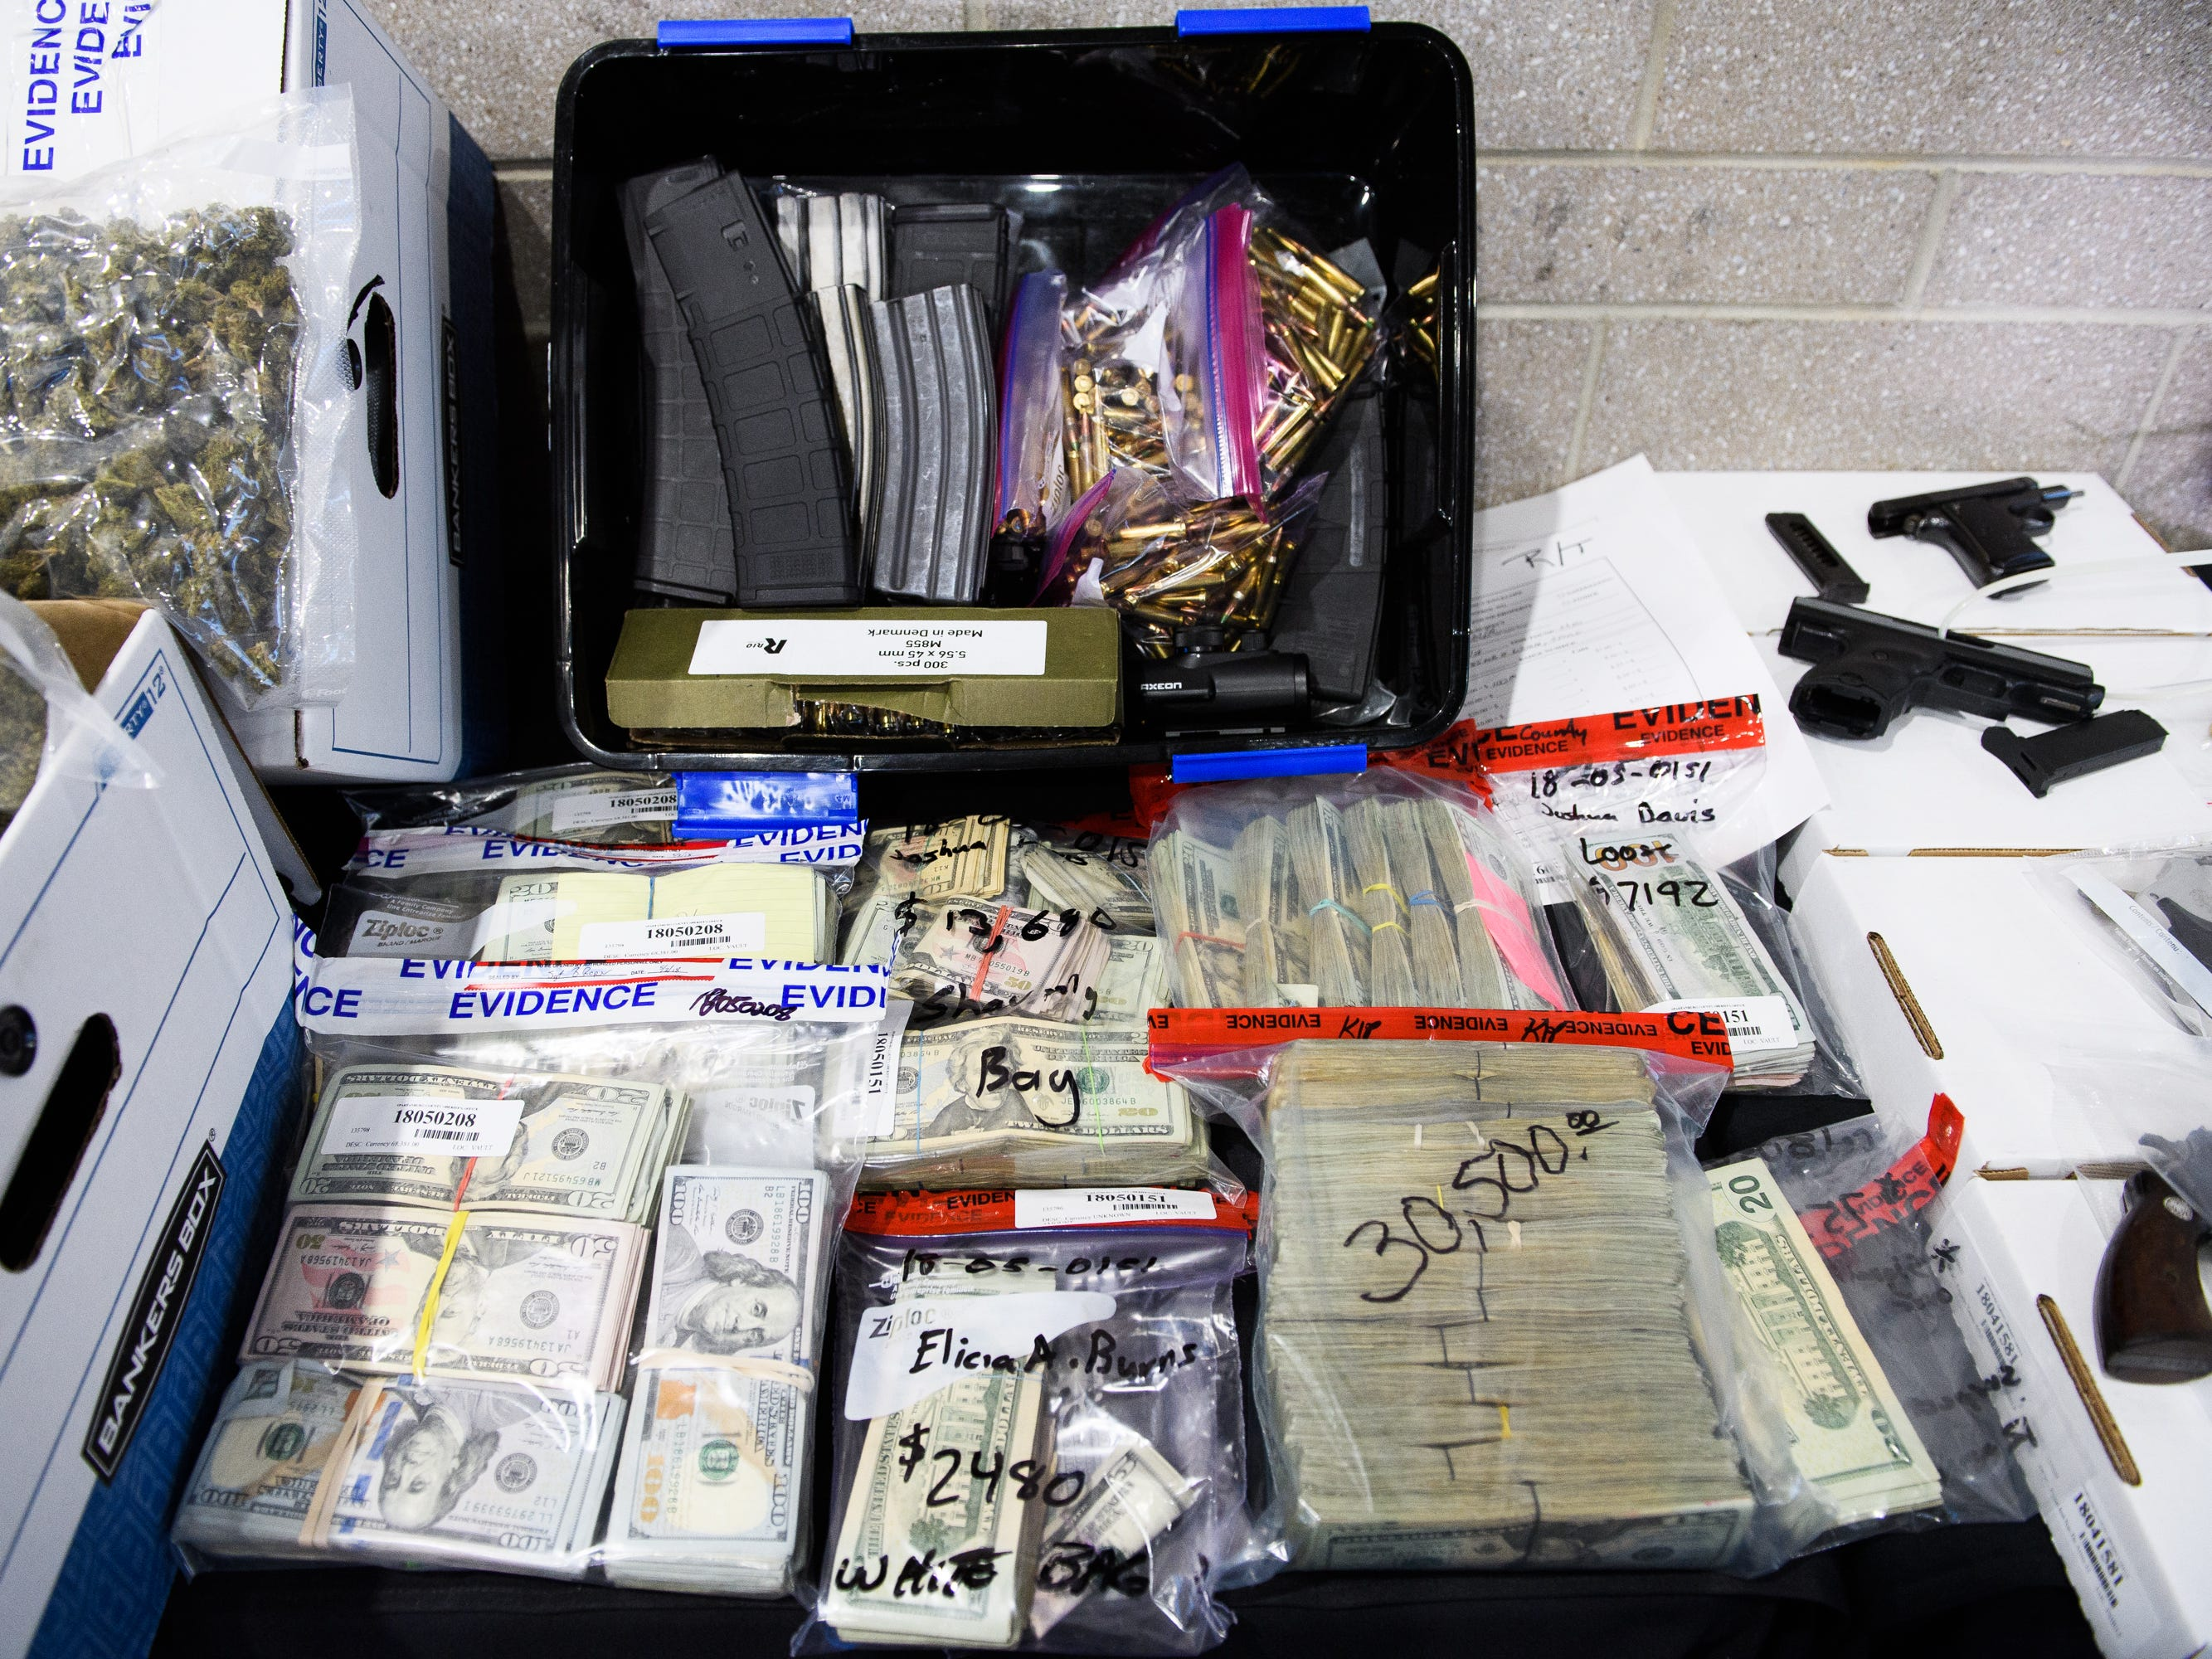 Large quantities of marijuana, money, firearms and other contraband sit on display during a Spartanburg County Sheriff's Office press conference on Operation Rolling Thunder's seizures on Friday, May 4, 2018.